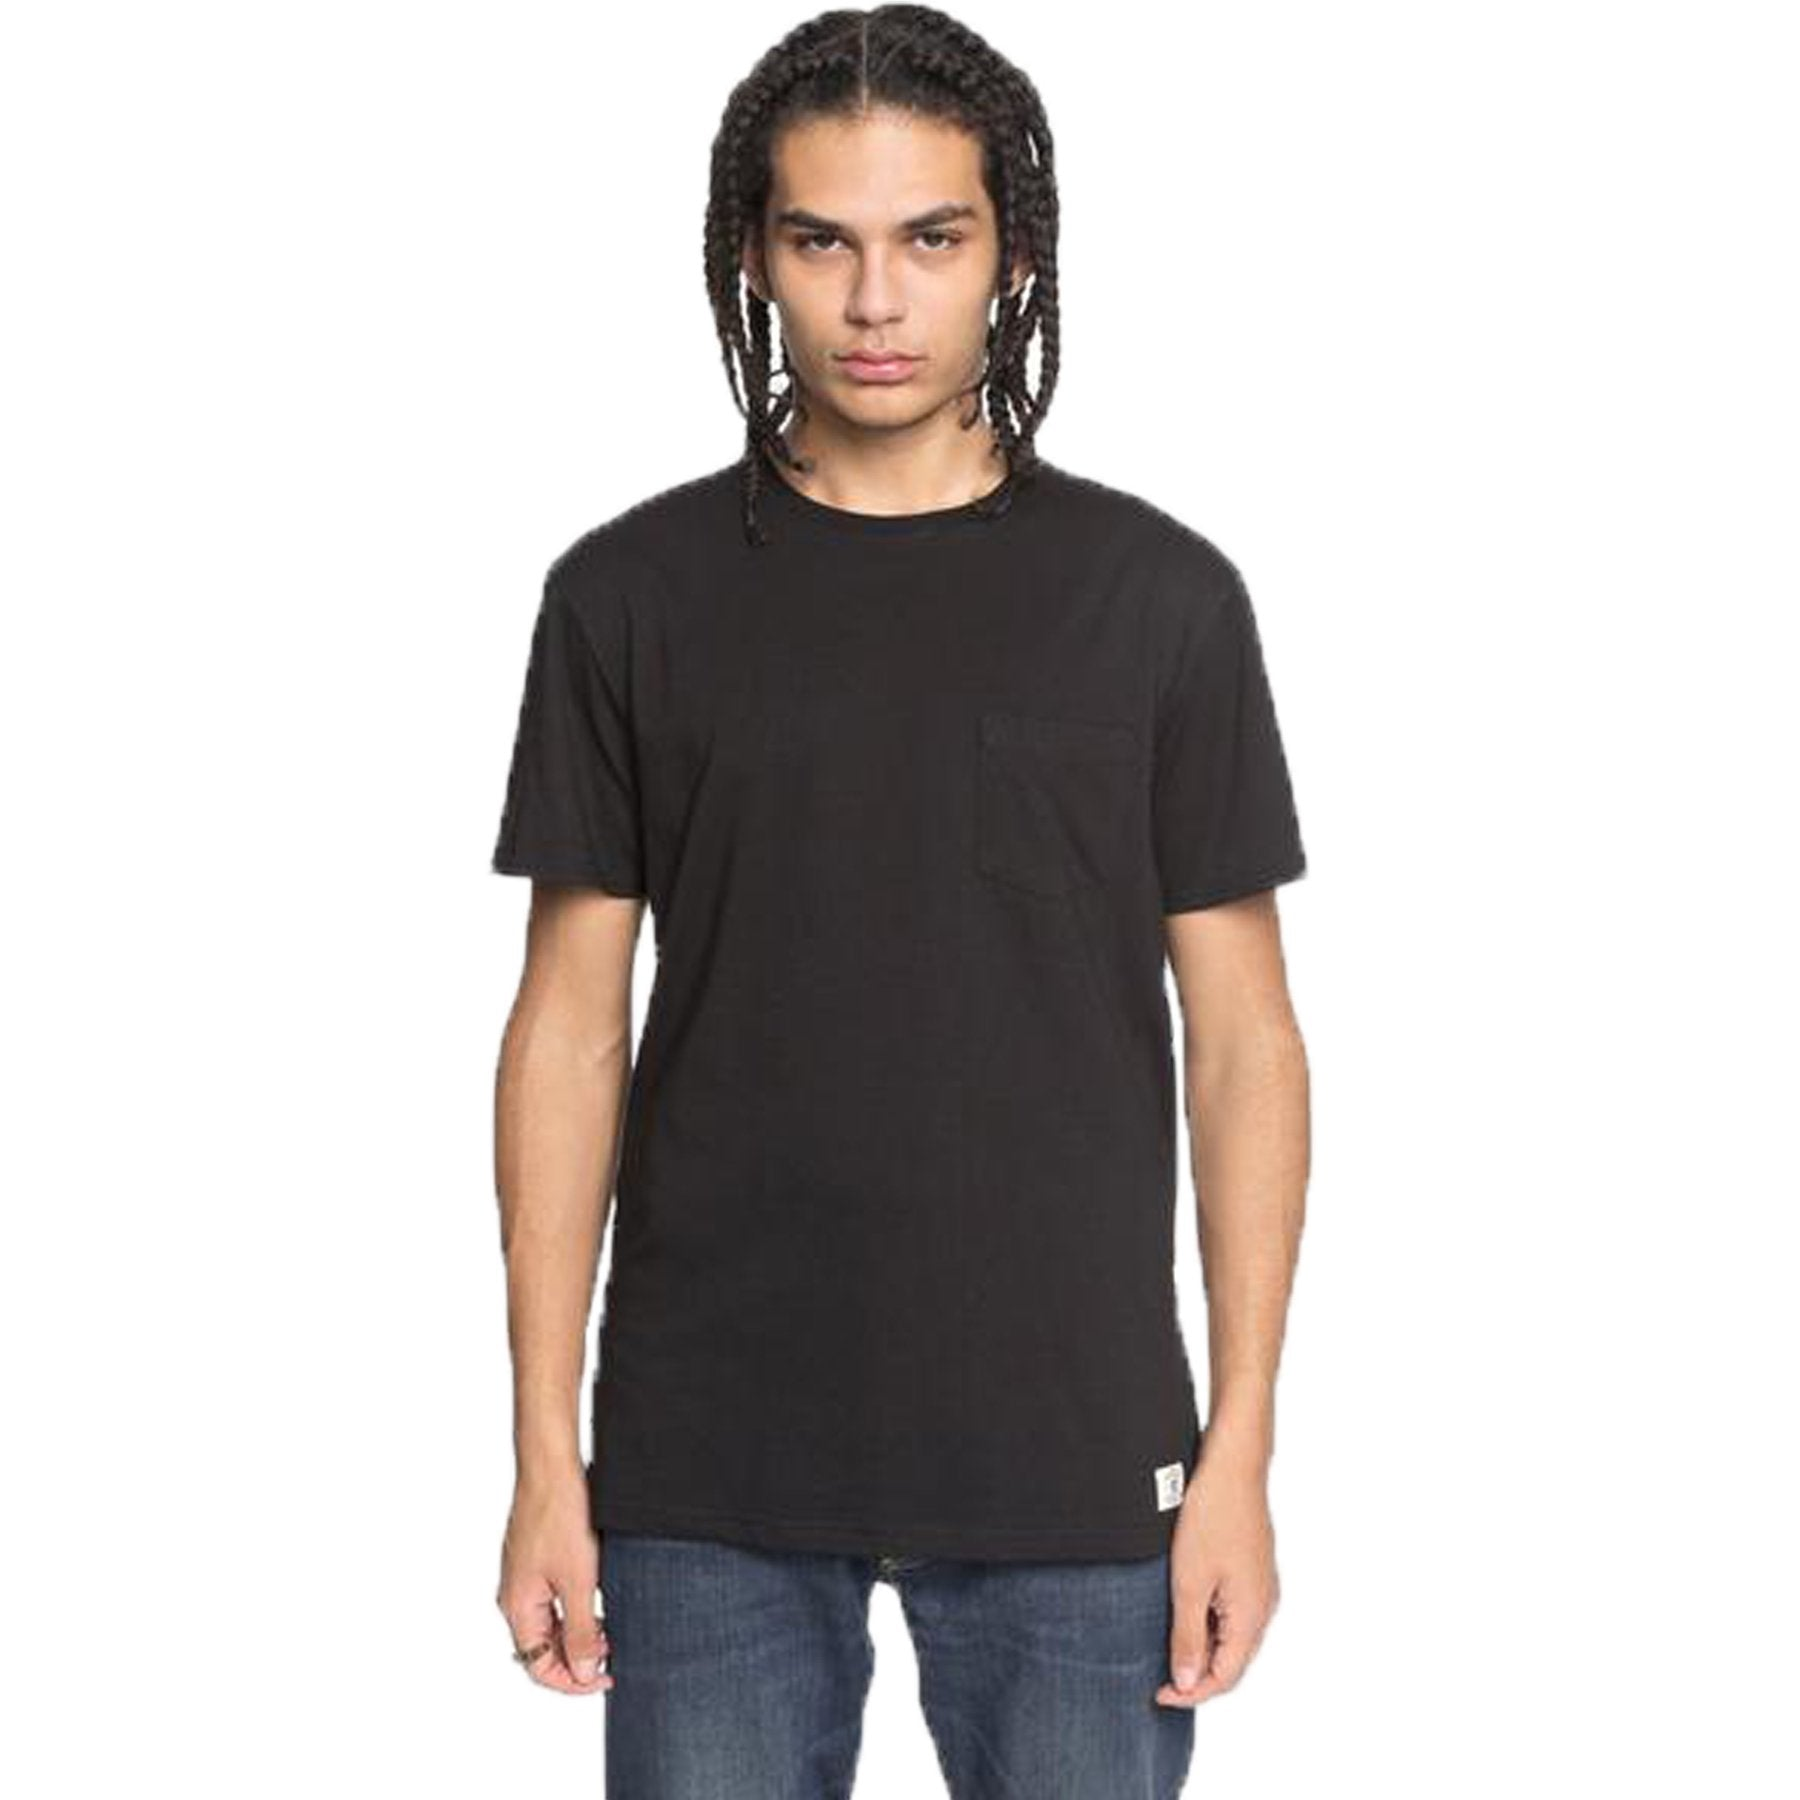 Surf Shop, Surf Clothing, DC Shoes, Basic Pocket, Tshirt, Black